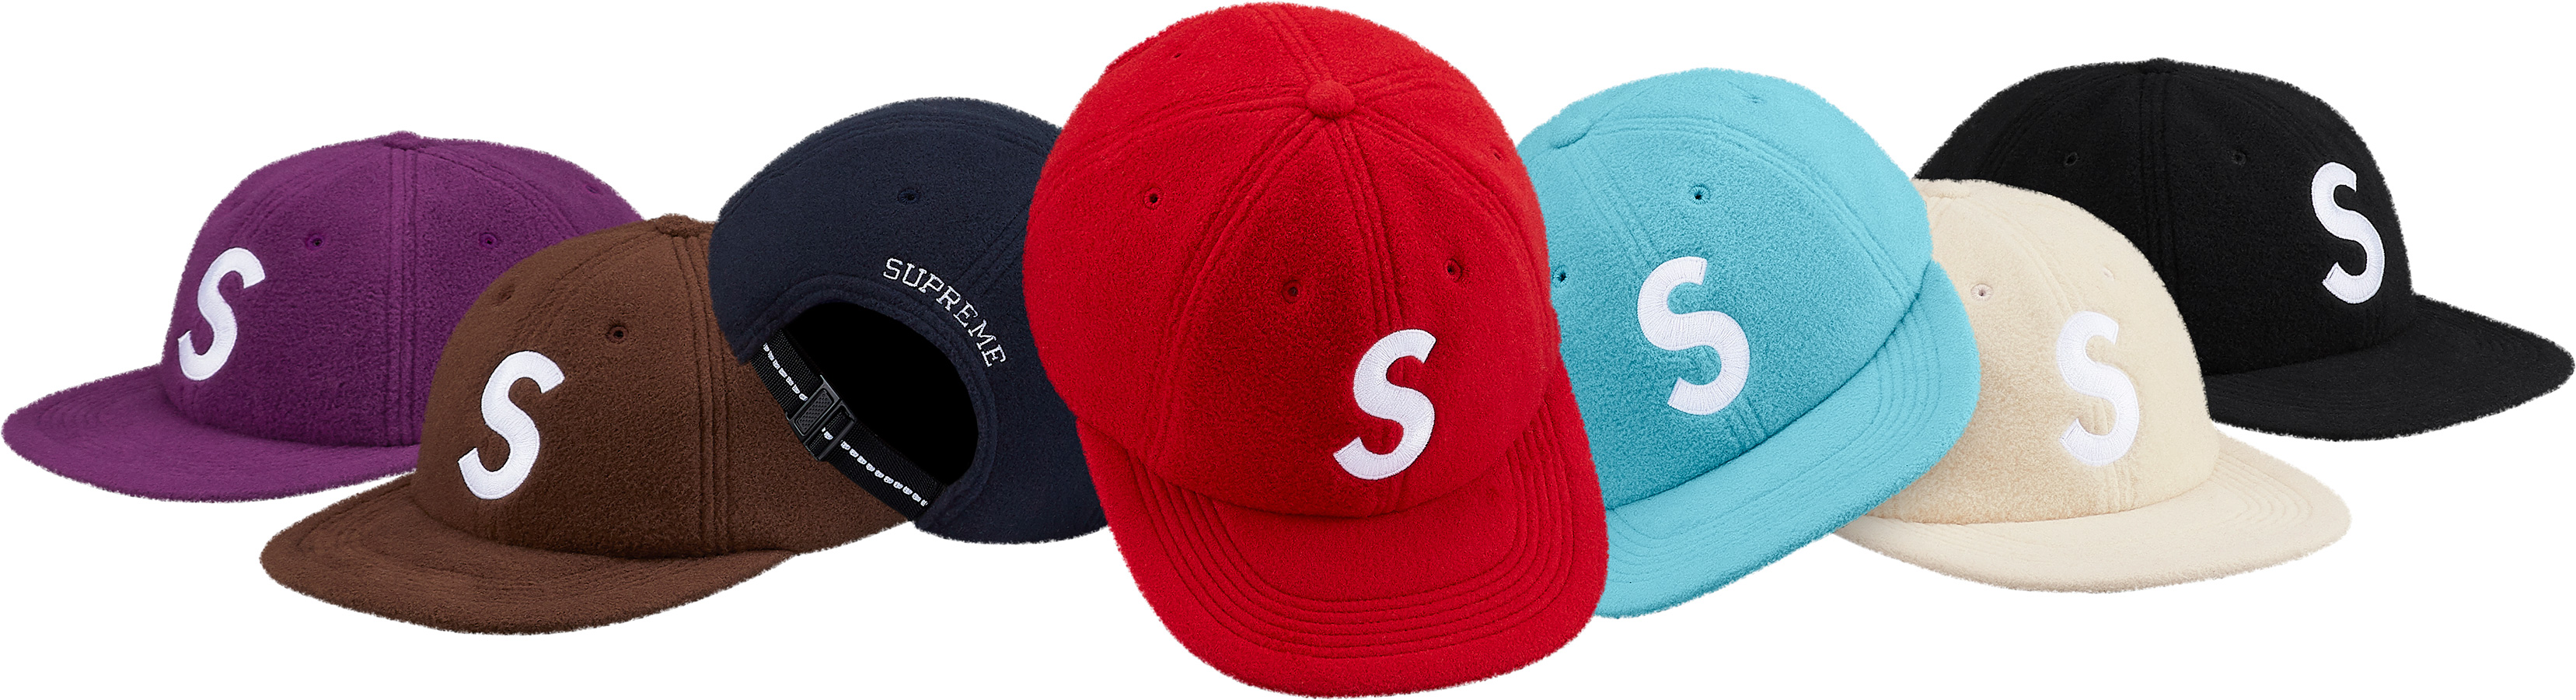 supreme-18aw-fall-winter-polartec-s-logo-6-panel